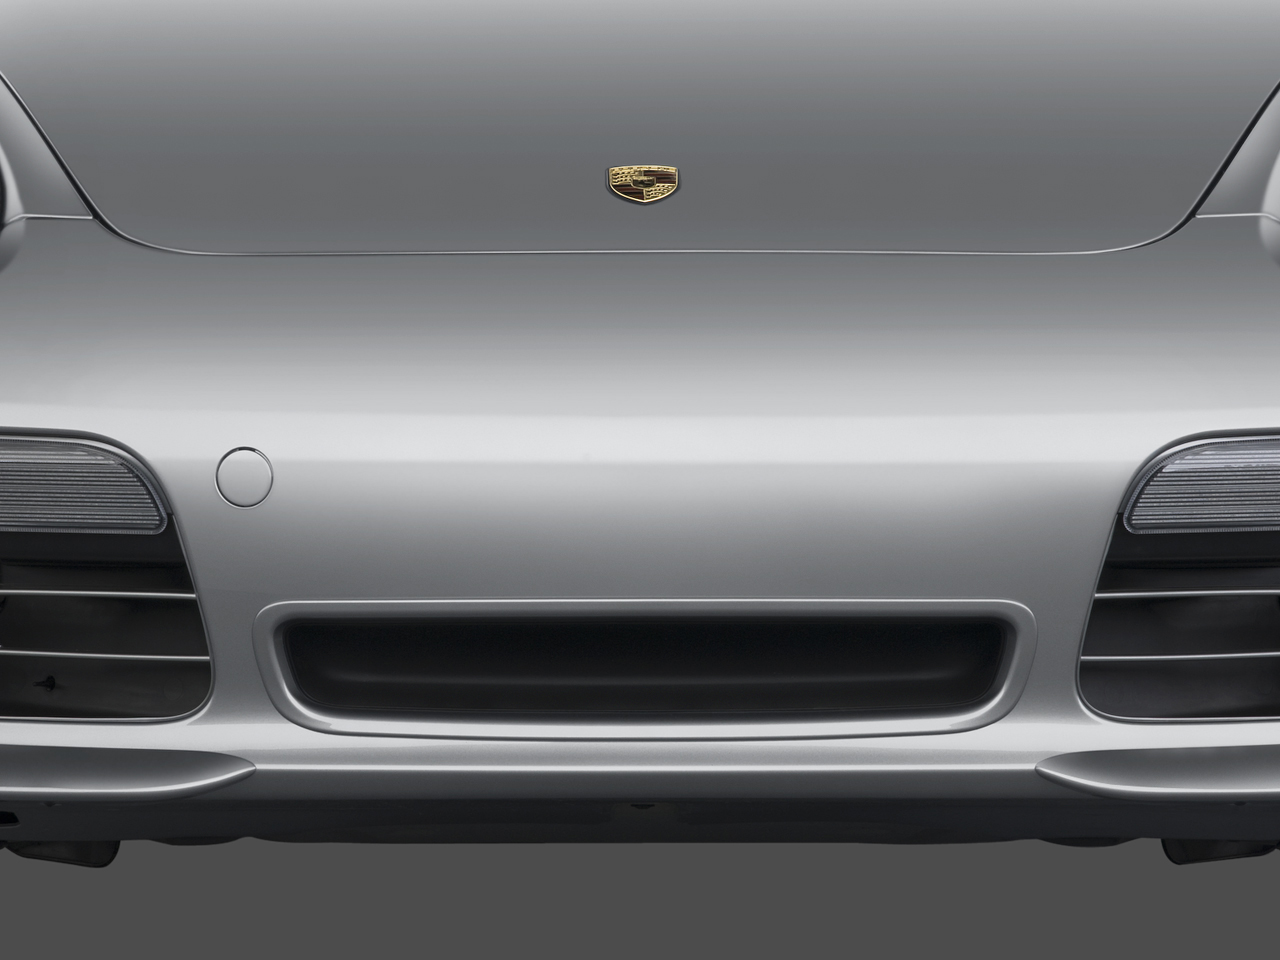 2013 Design Of The Year Porsche Boxster Automobile Magazine